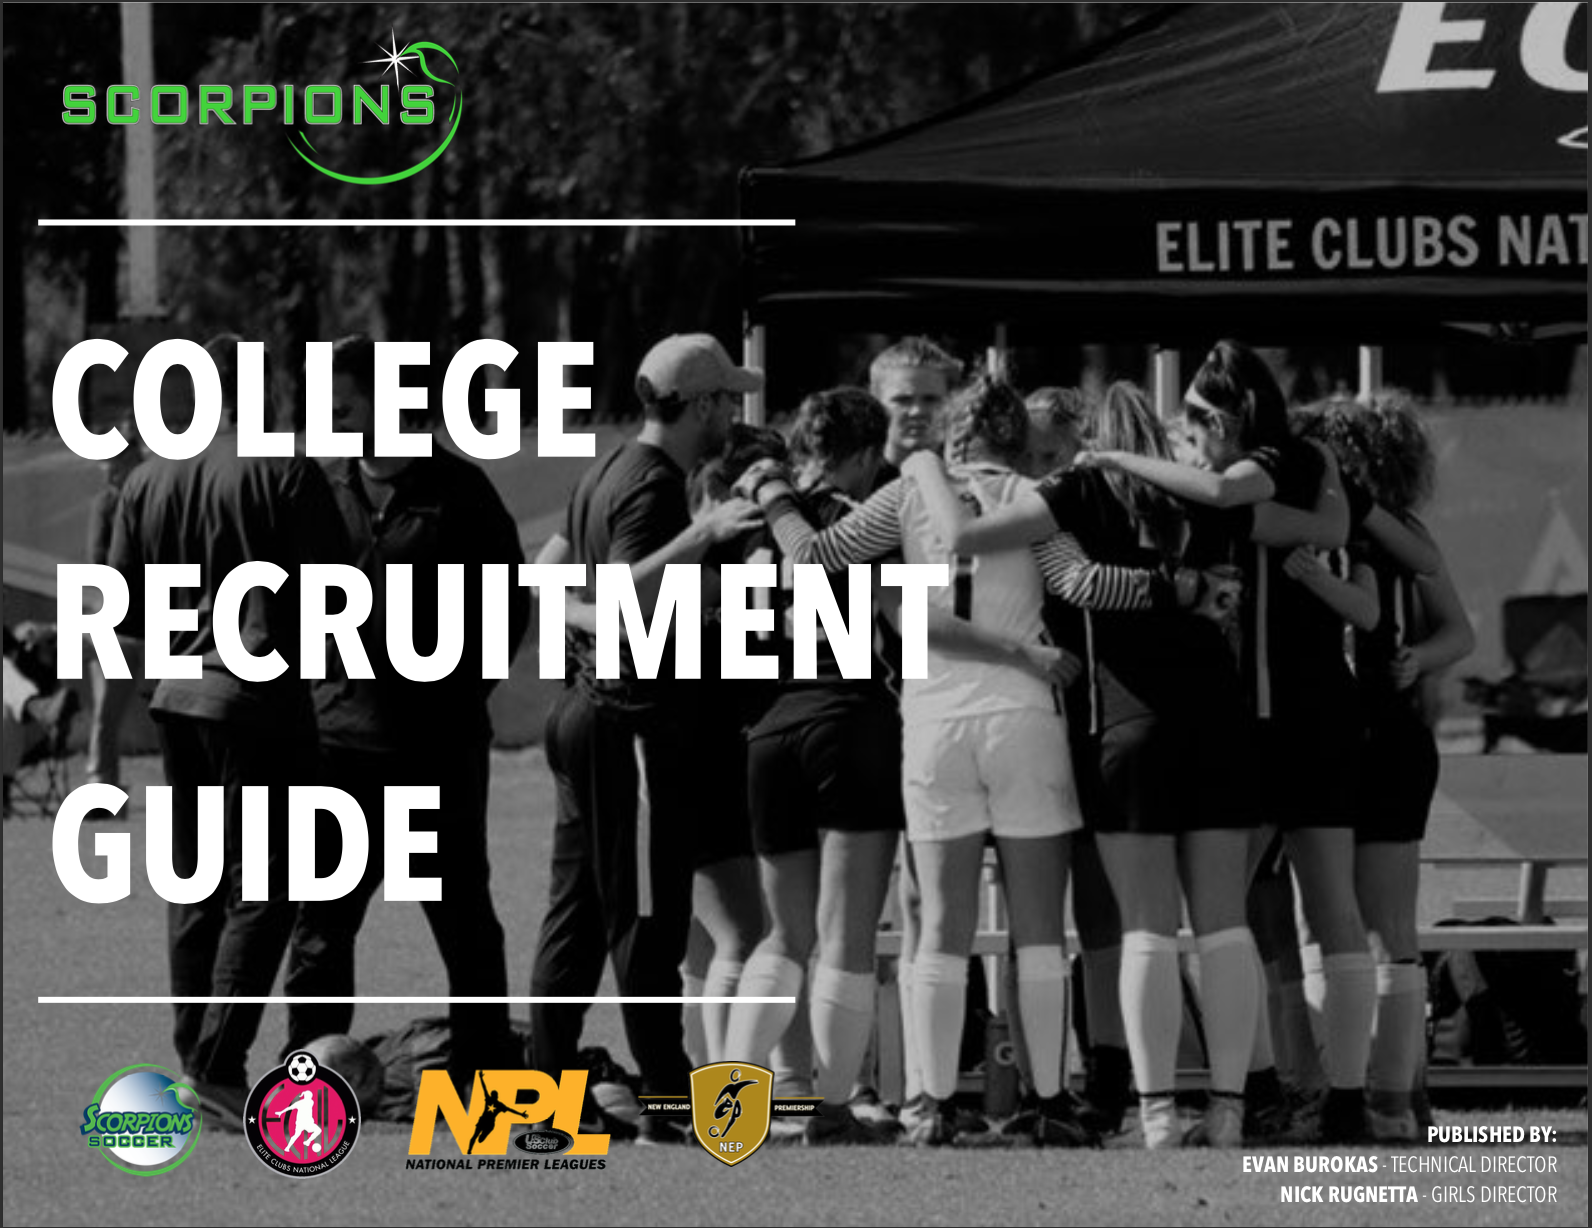 College Recruitment Guide